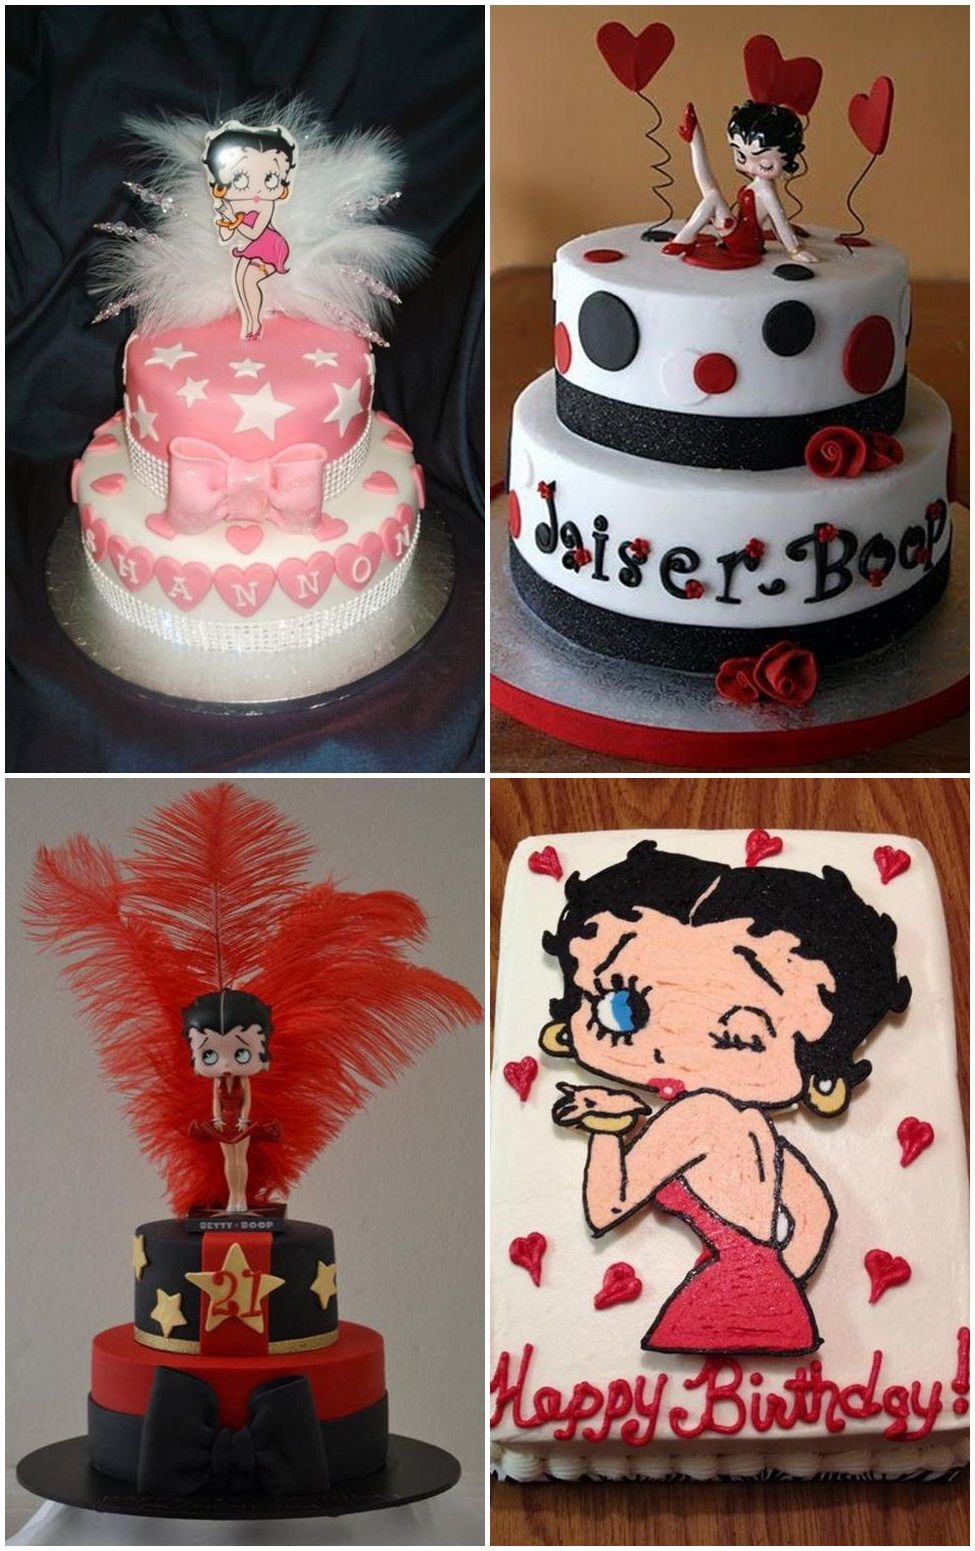 Betty Boop Cakes Ideas | Fiesta de minnie mouse | Pinterest ...